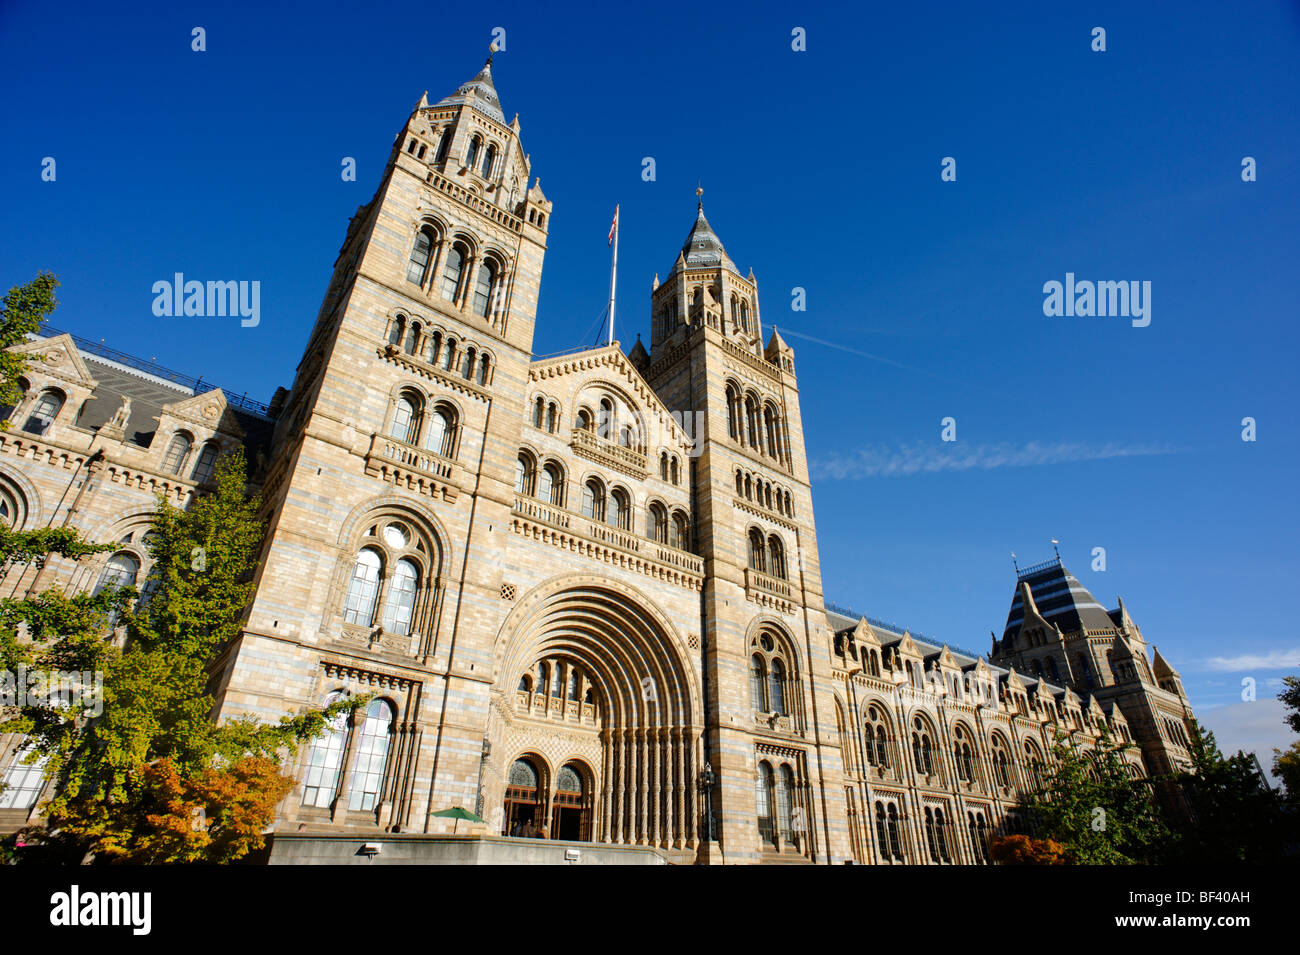 Waterhouse building of the Natural History Museum front entrance. London. UK 2009. - Stock Image